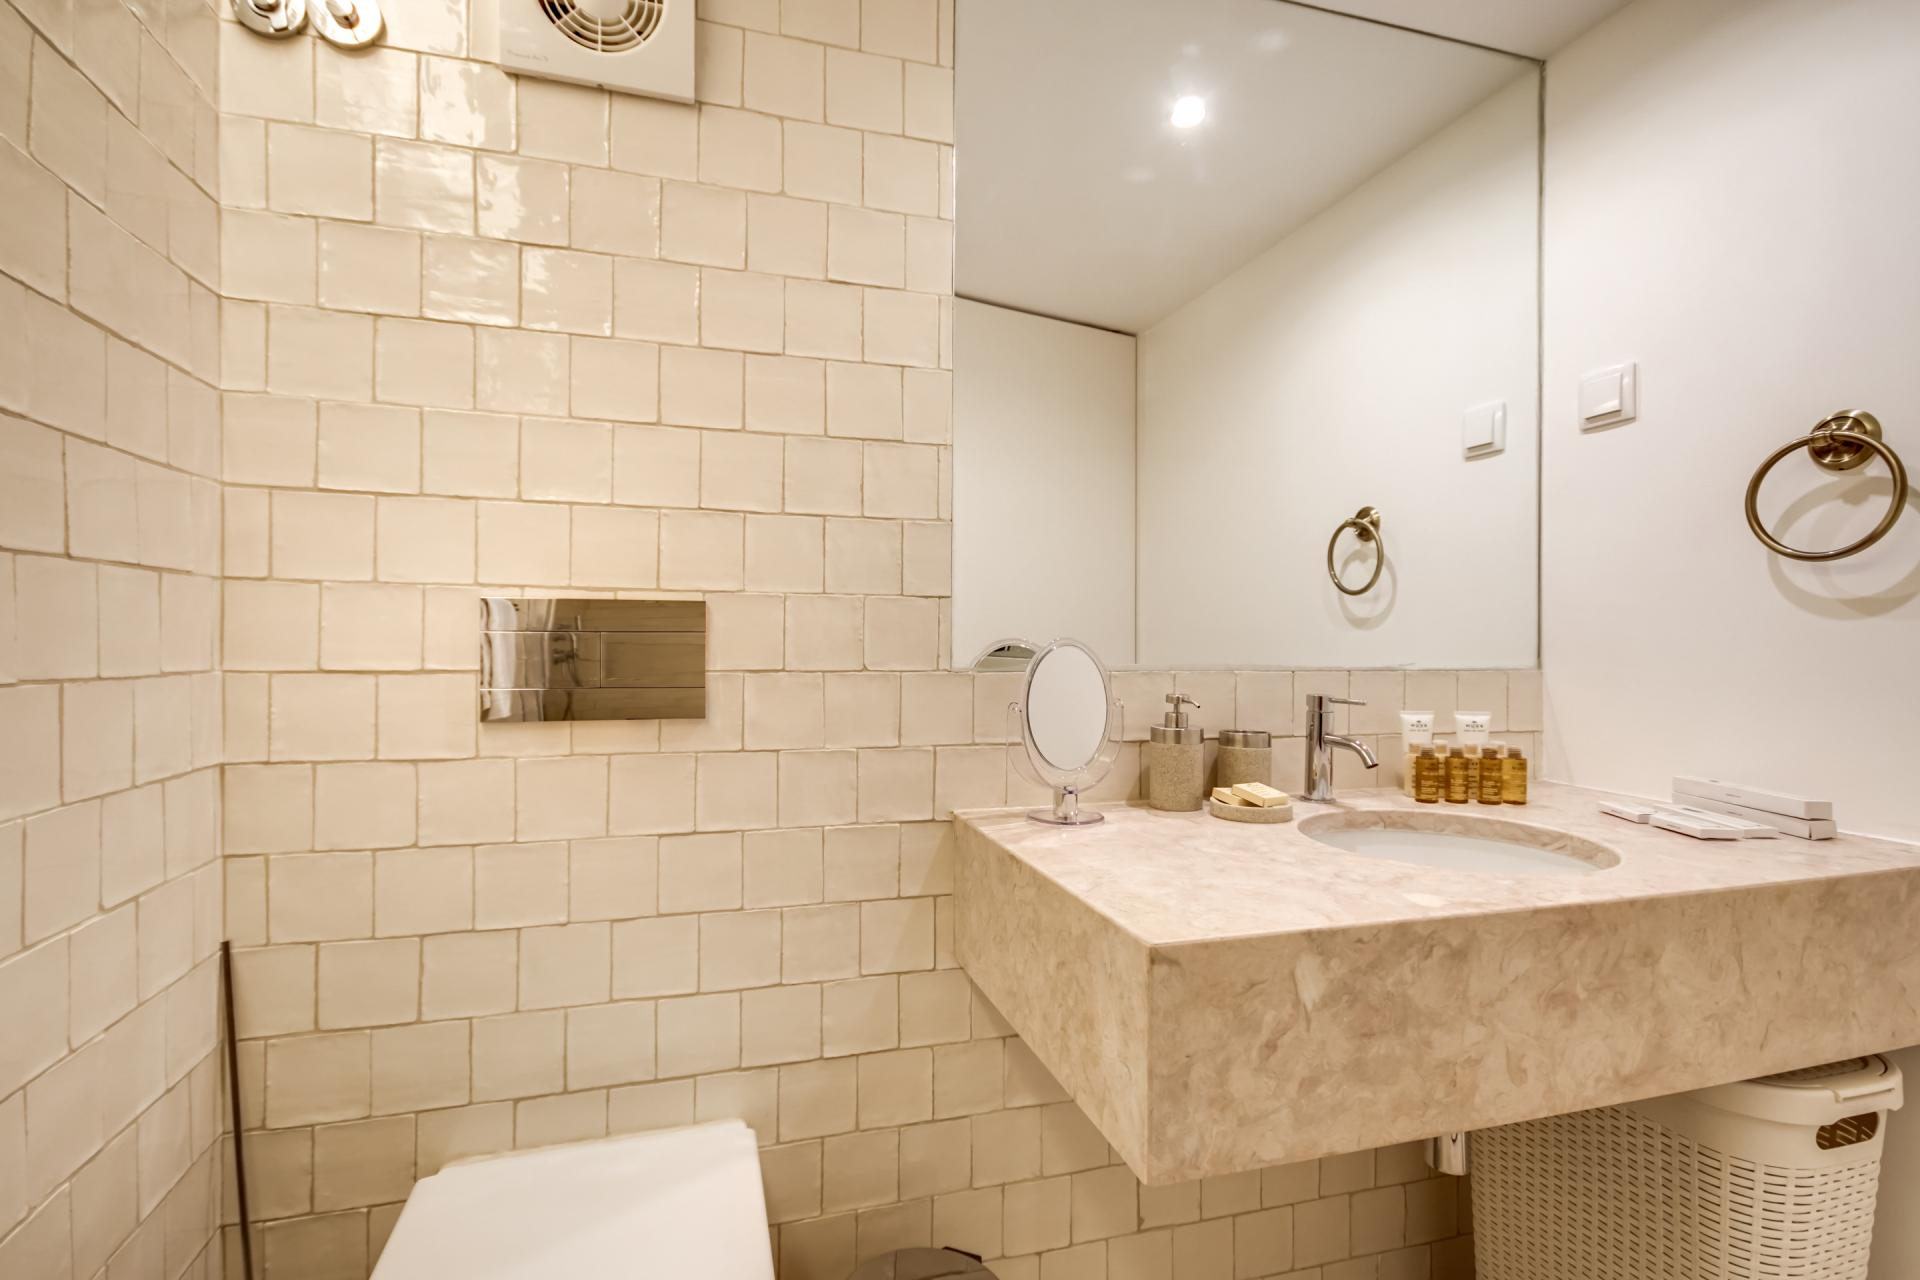 Bathroom at Emenda Deluxe Apartment - Citybase Apartments